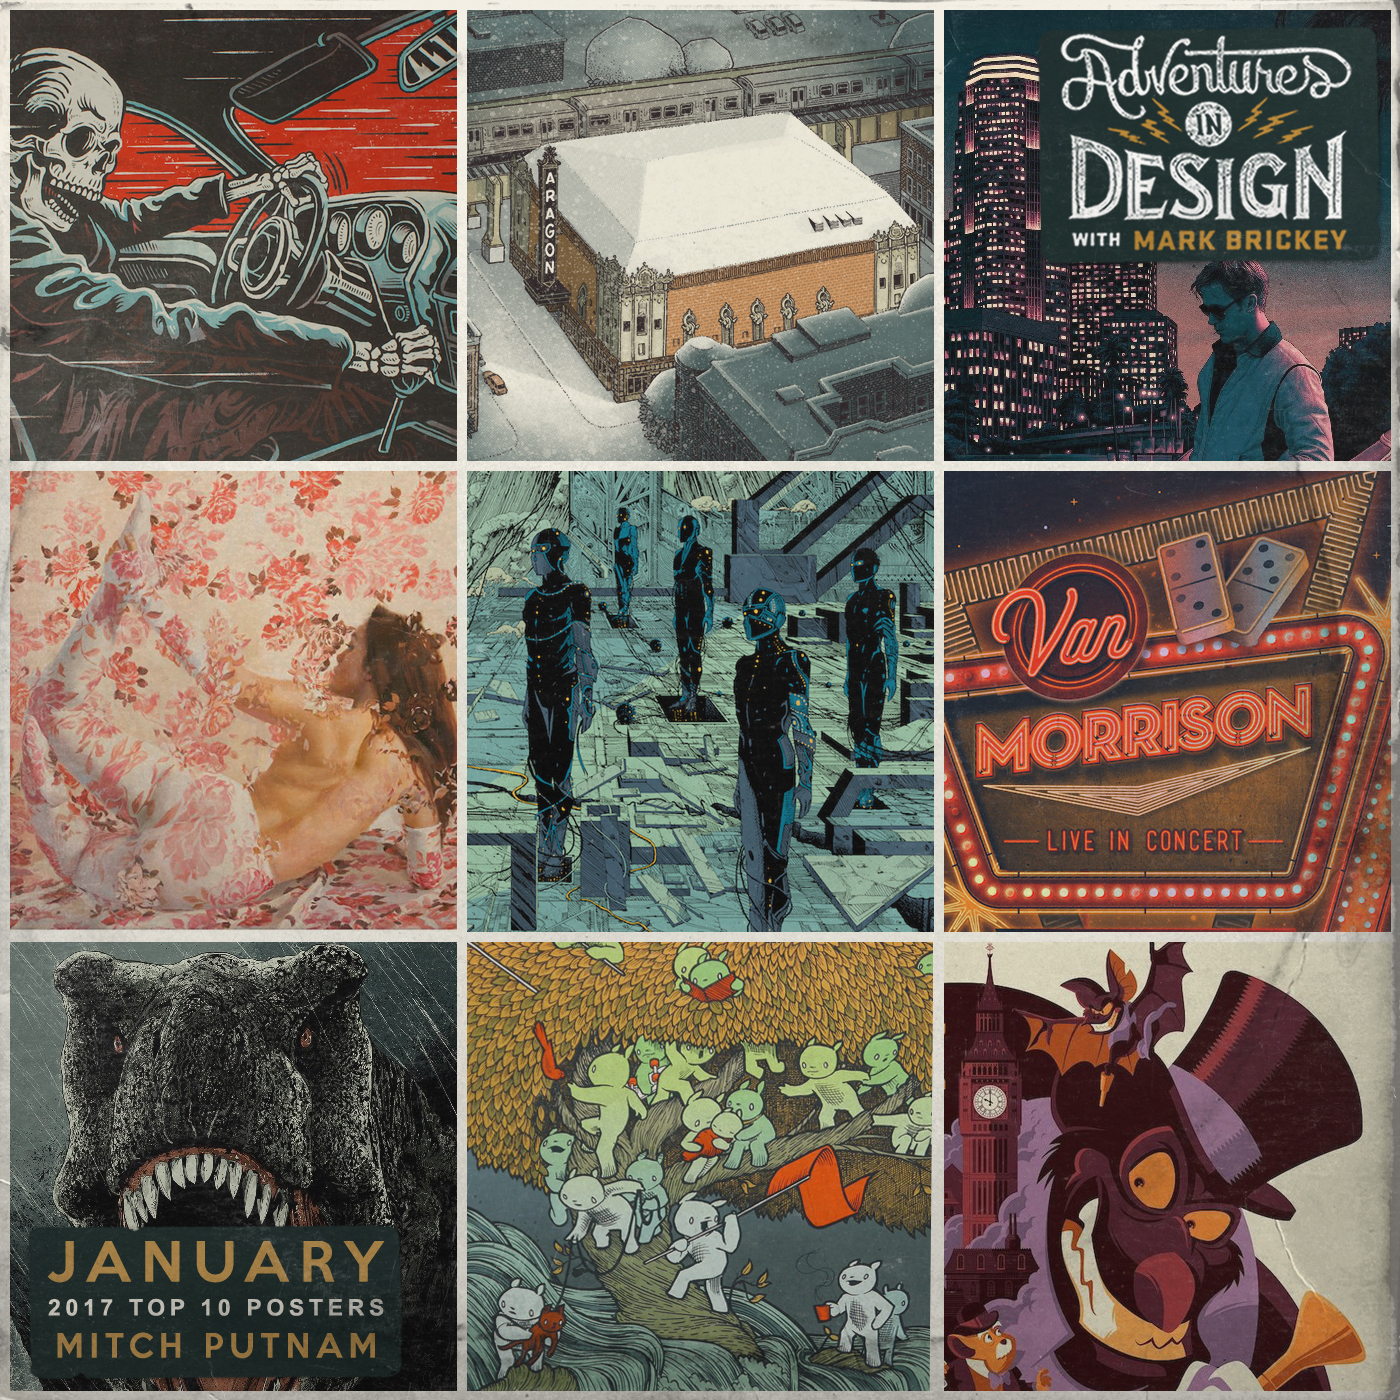 531 - January Poster Countdown with Mitch Putnam